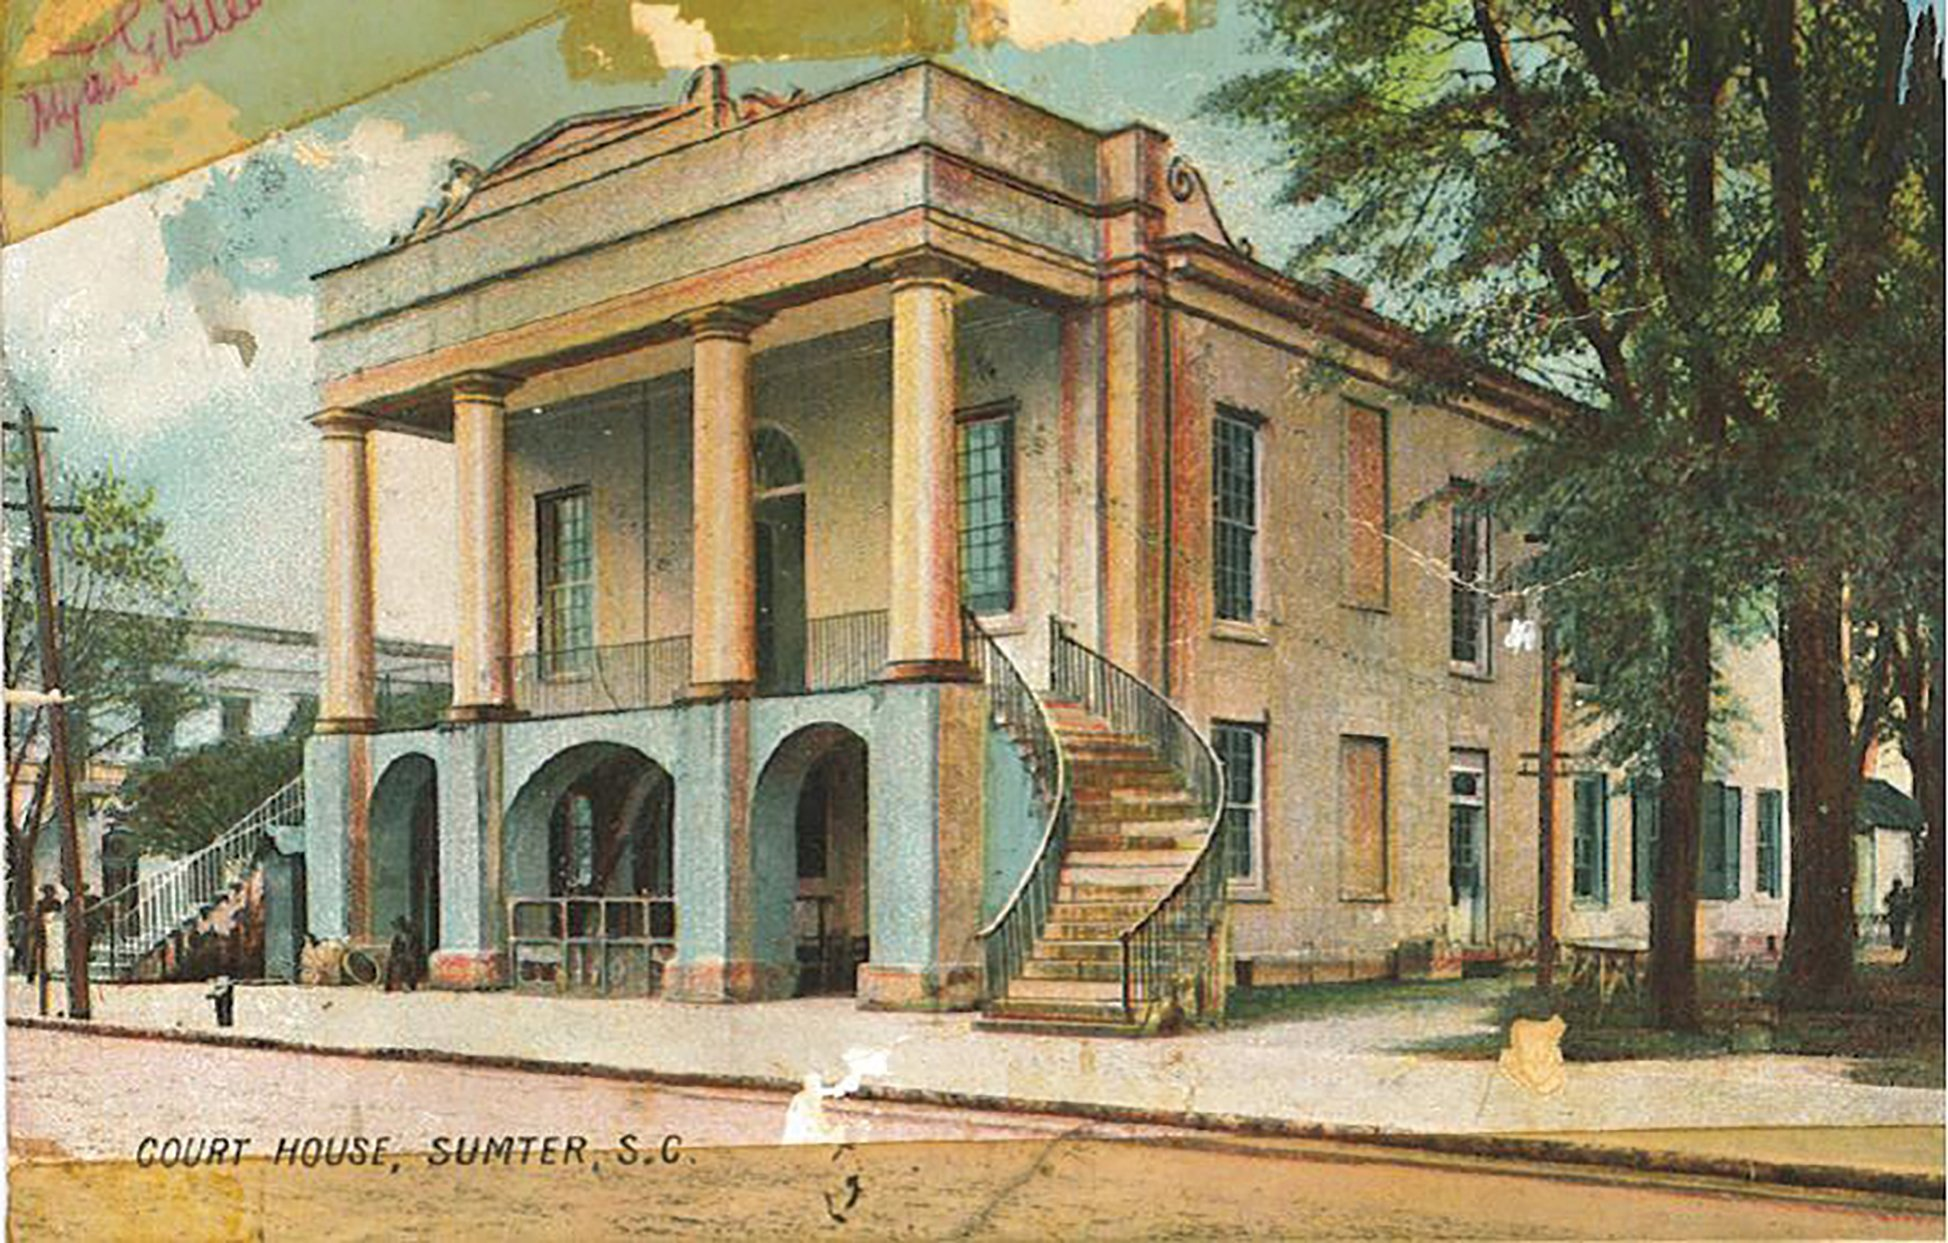 FROM THE SUMTER COUNTY MUSEUM PERMANENT COLLECTION